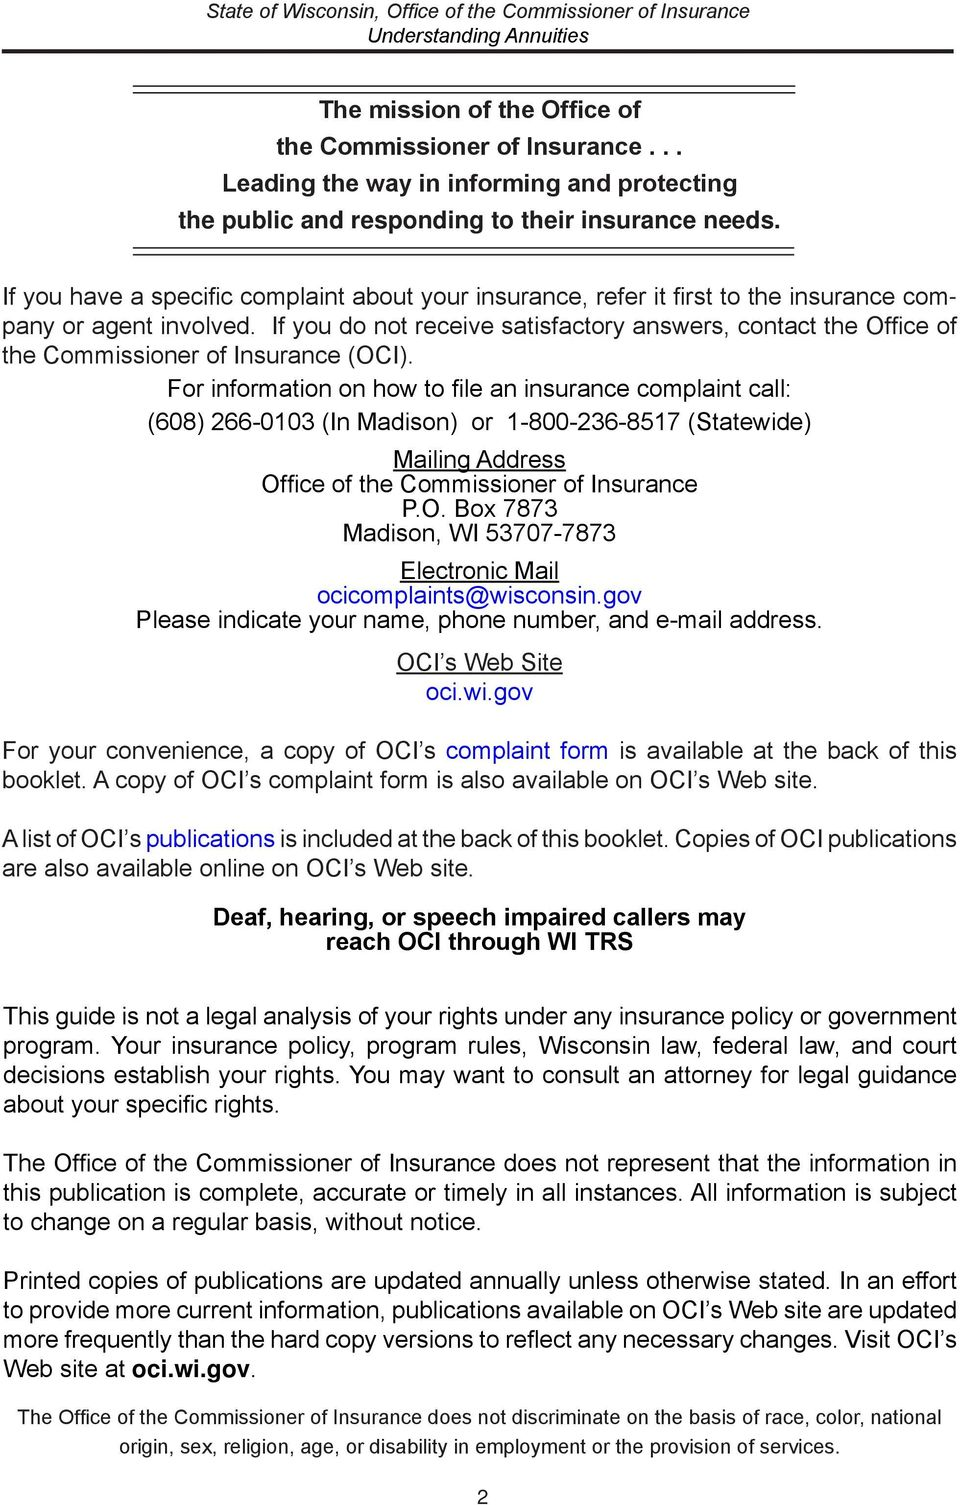 If you do not receive satisfactory answers, contact the Office of the Commissioner of Insurance (OCI).